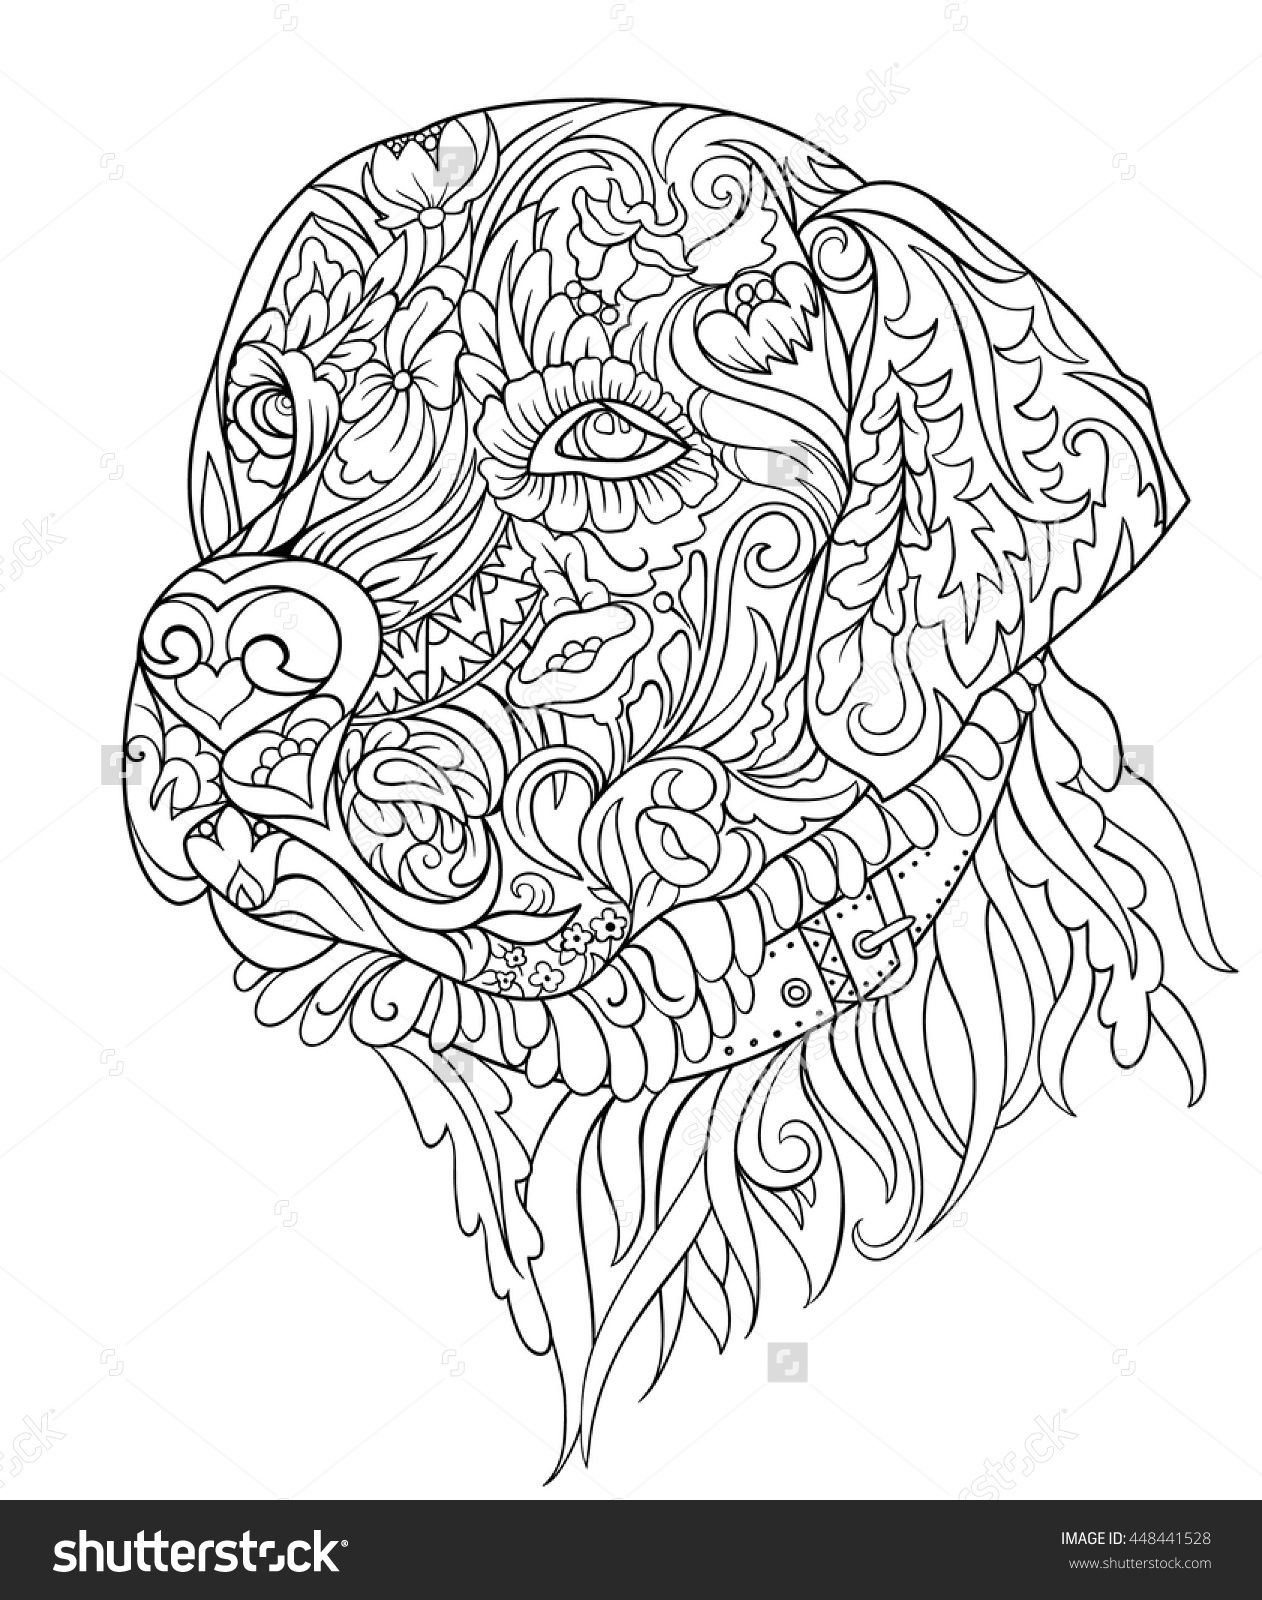 Zentangle Cute Dog Hand Drawn Sketch For Adult And Children